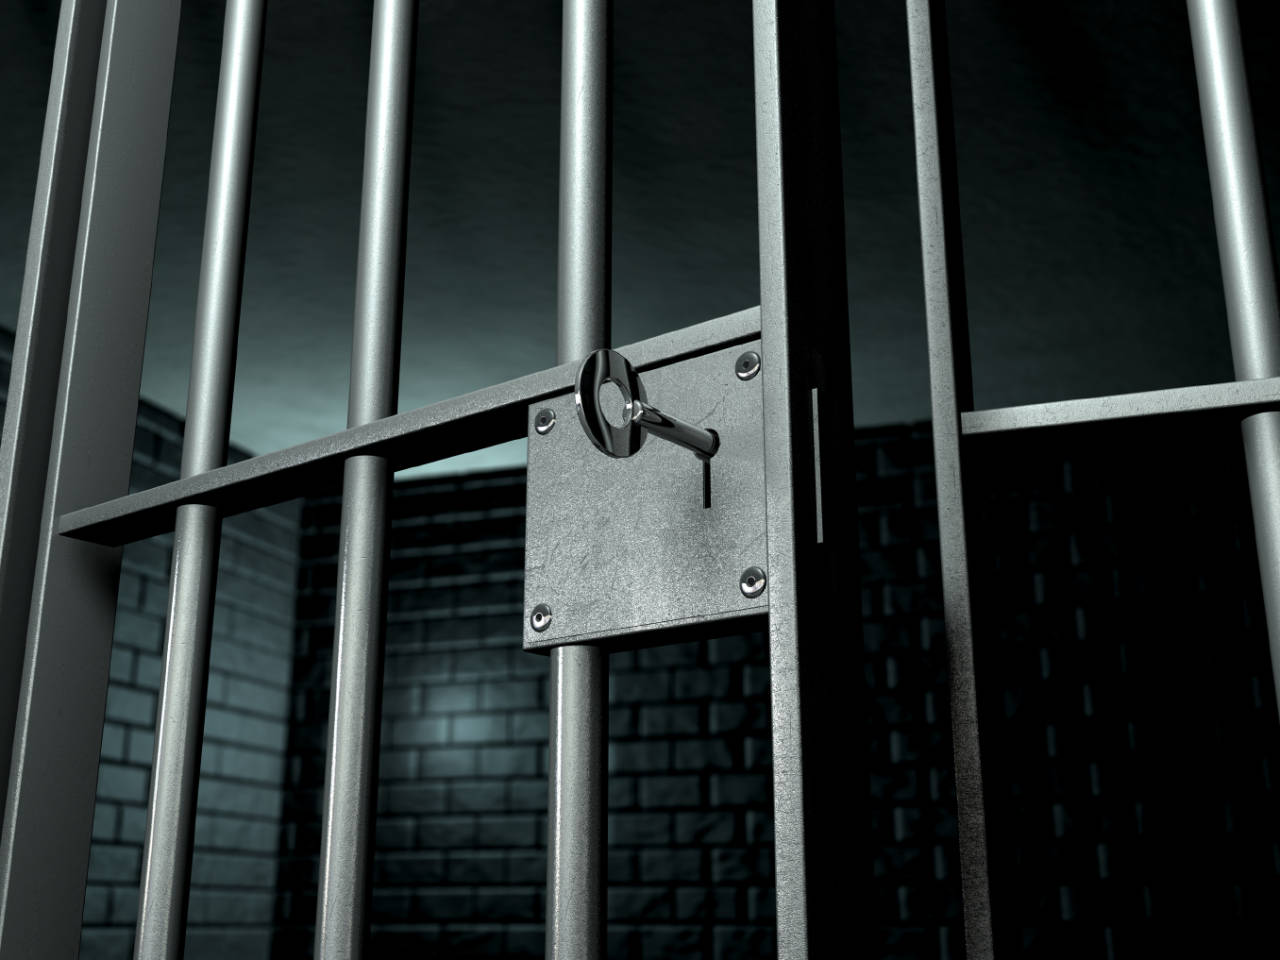 Research topic idea for Criminal Justice (with maybe a little Psychology too)?